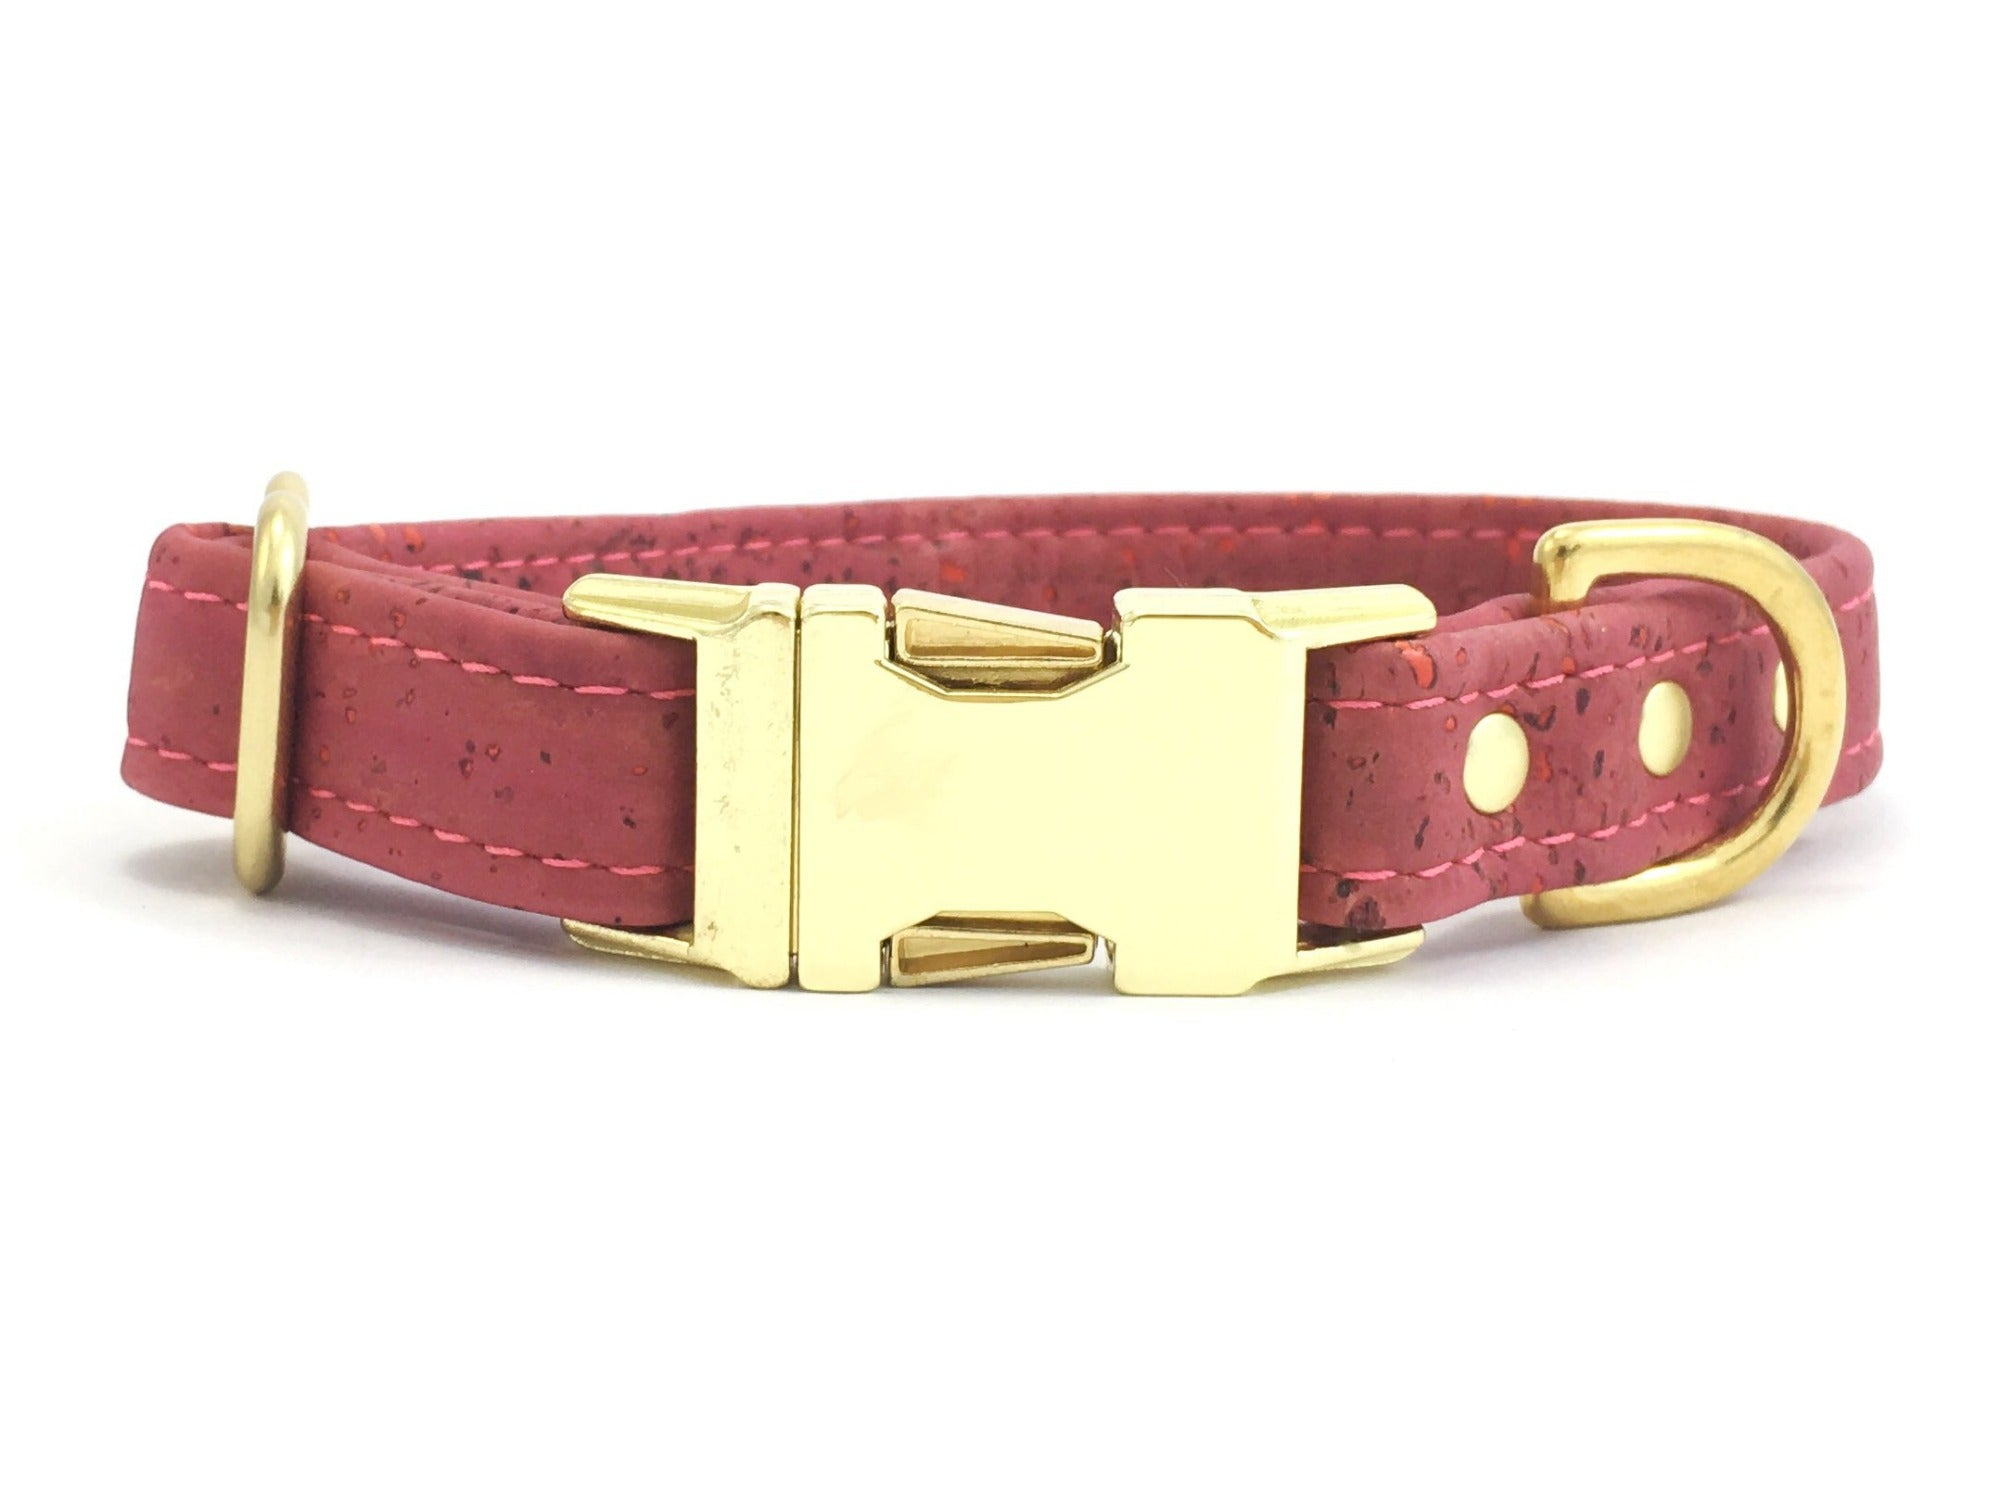 Pink dog collar in vegan cork leather with a luxury brass quick release buckle